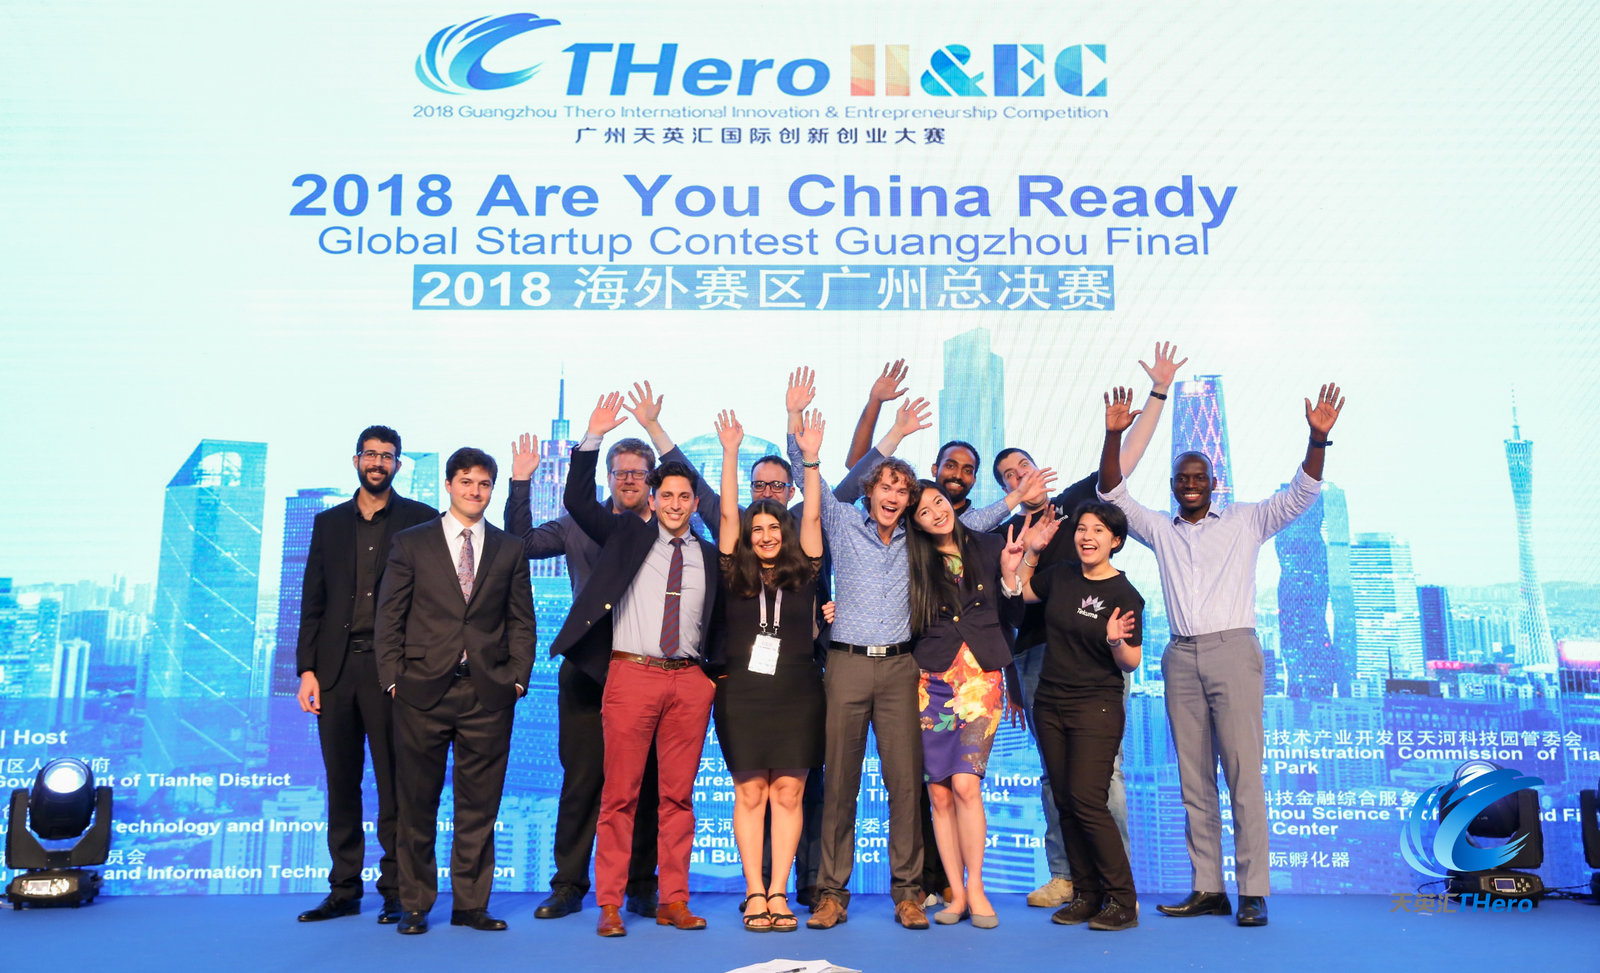 THero Are You China Ready Startup Contest 2018 - 0.png